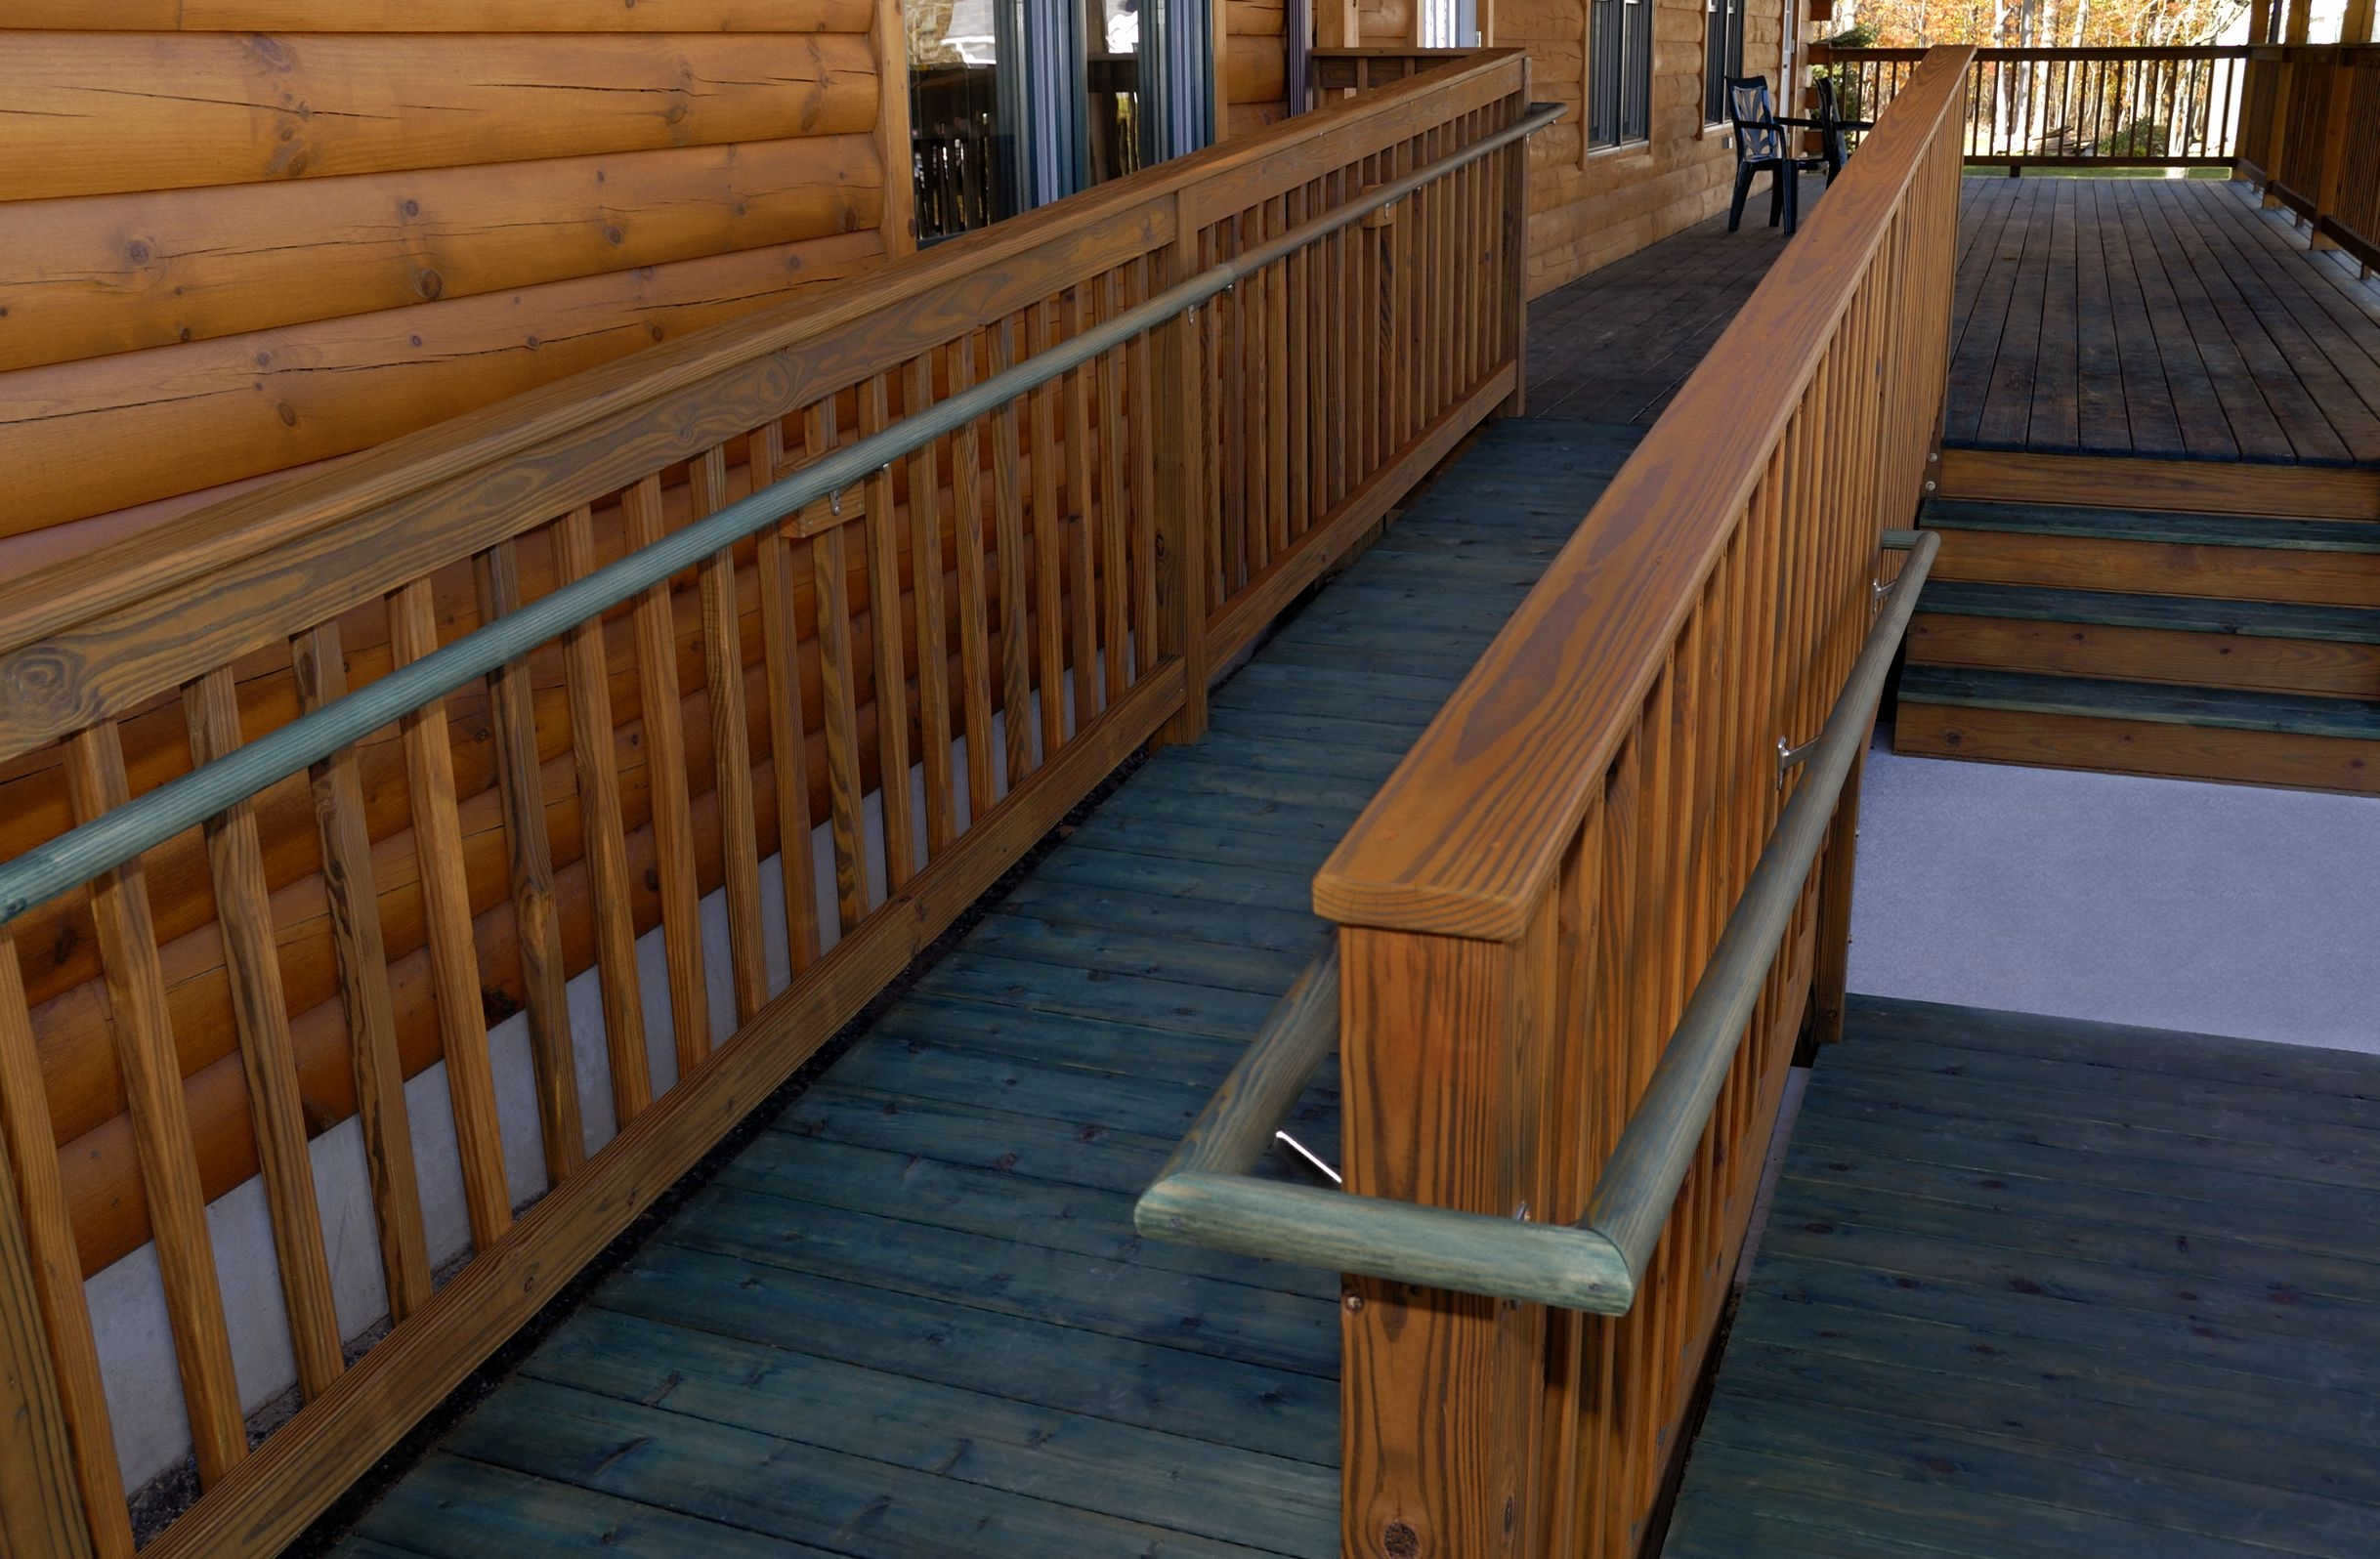 Ada Wheelchair Ramp Requirements | Handicap Rails For Steps | Deck | Wheelchair Ramp | Activated Led | Adjustable Height | Bed